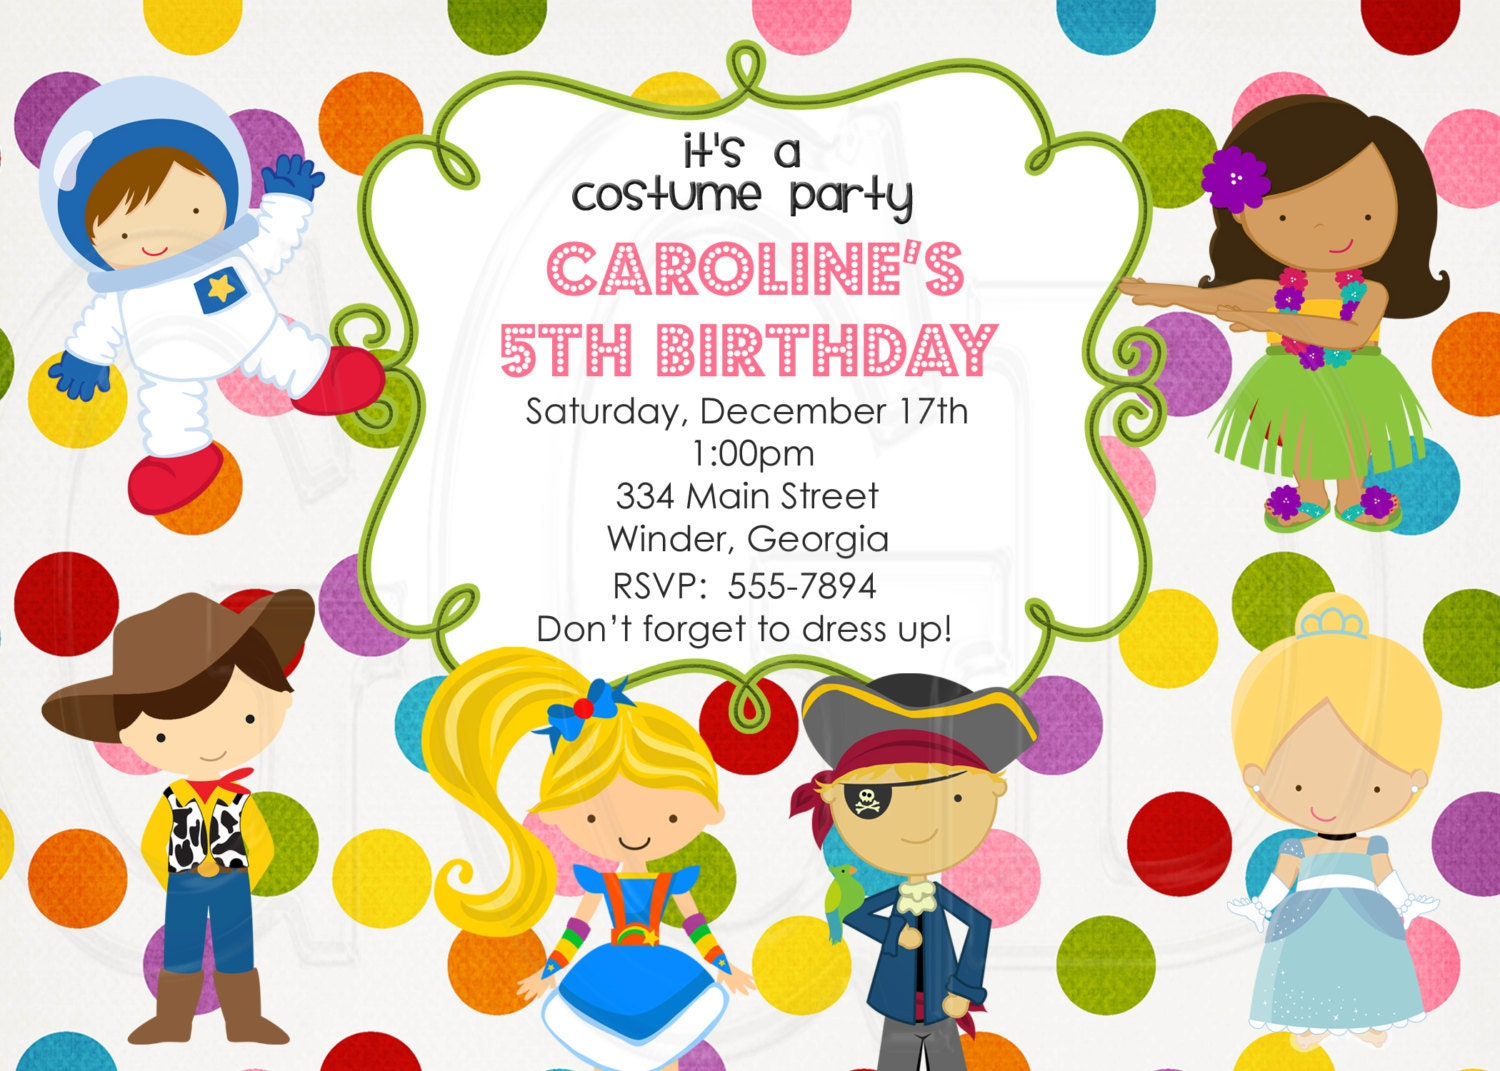 Costume party invite – Custom Party Invitation